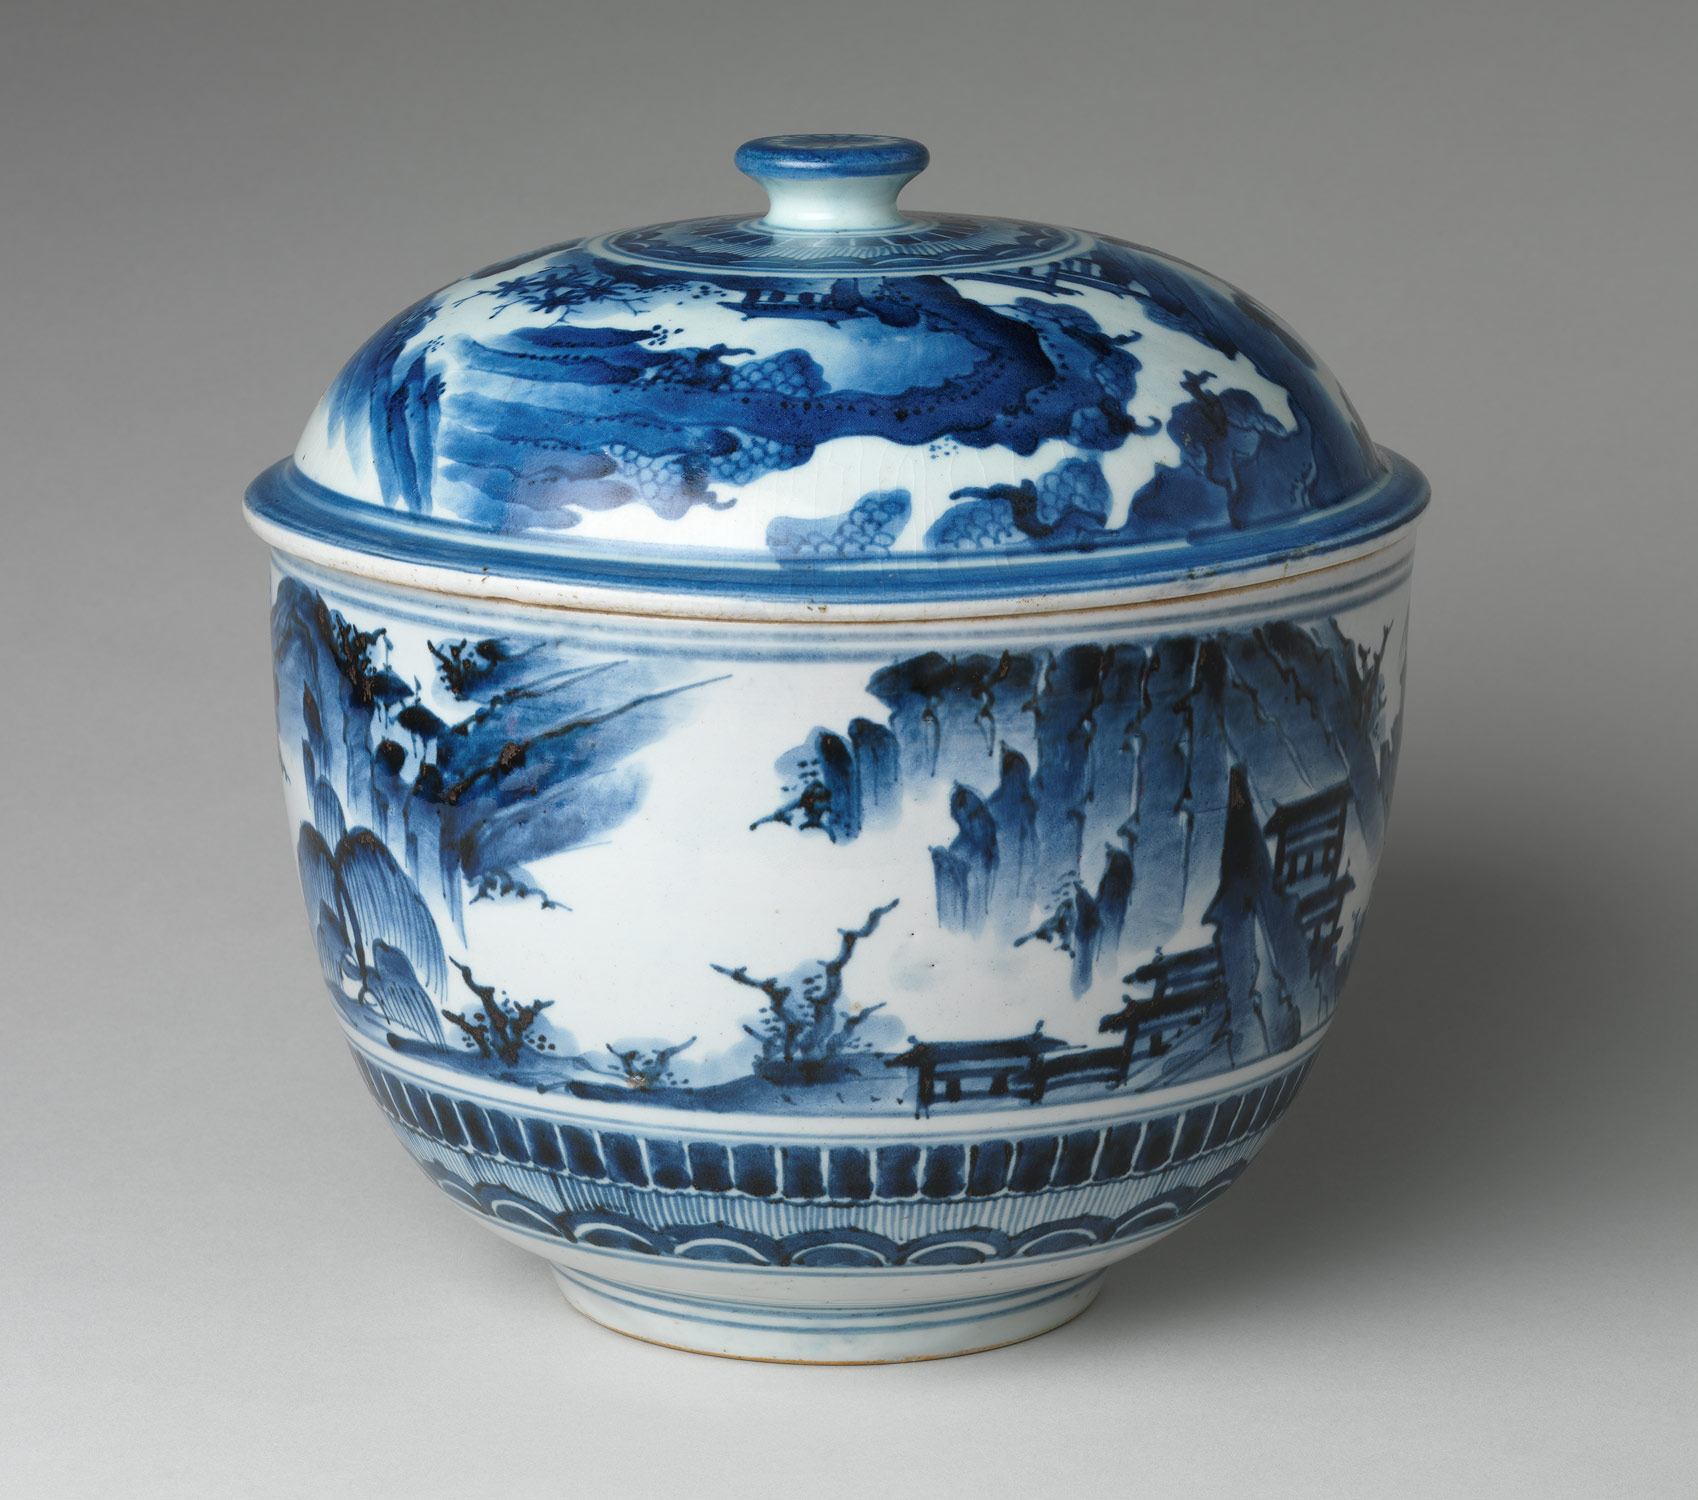 Tureen with Landscape